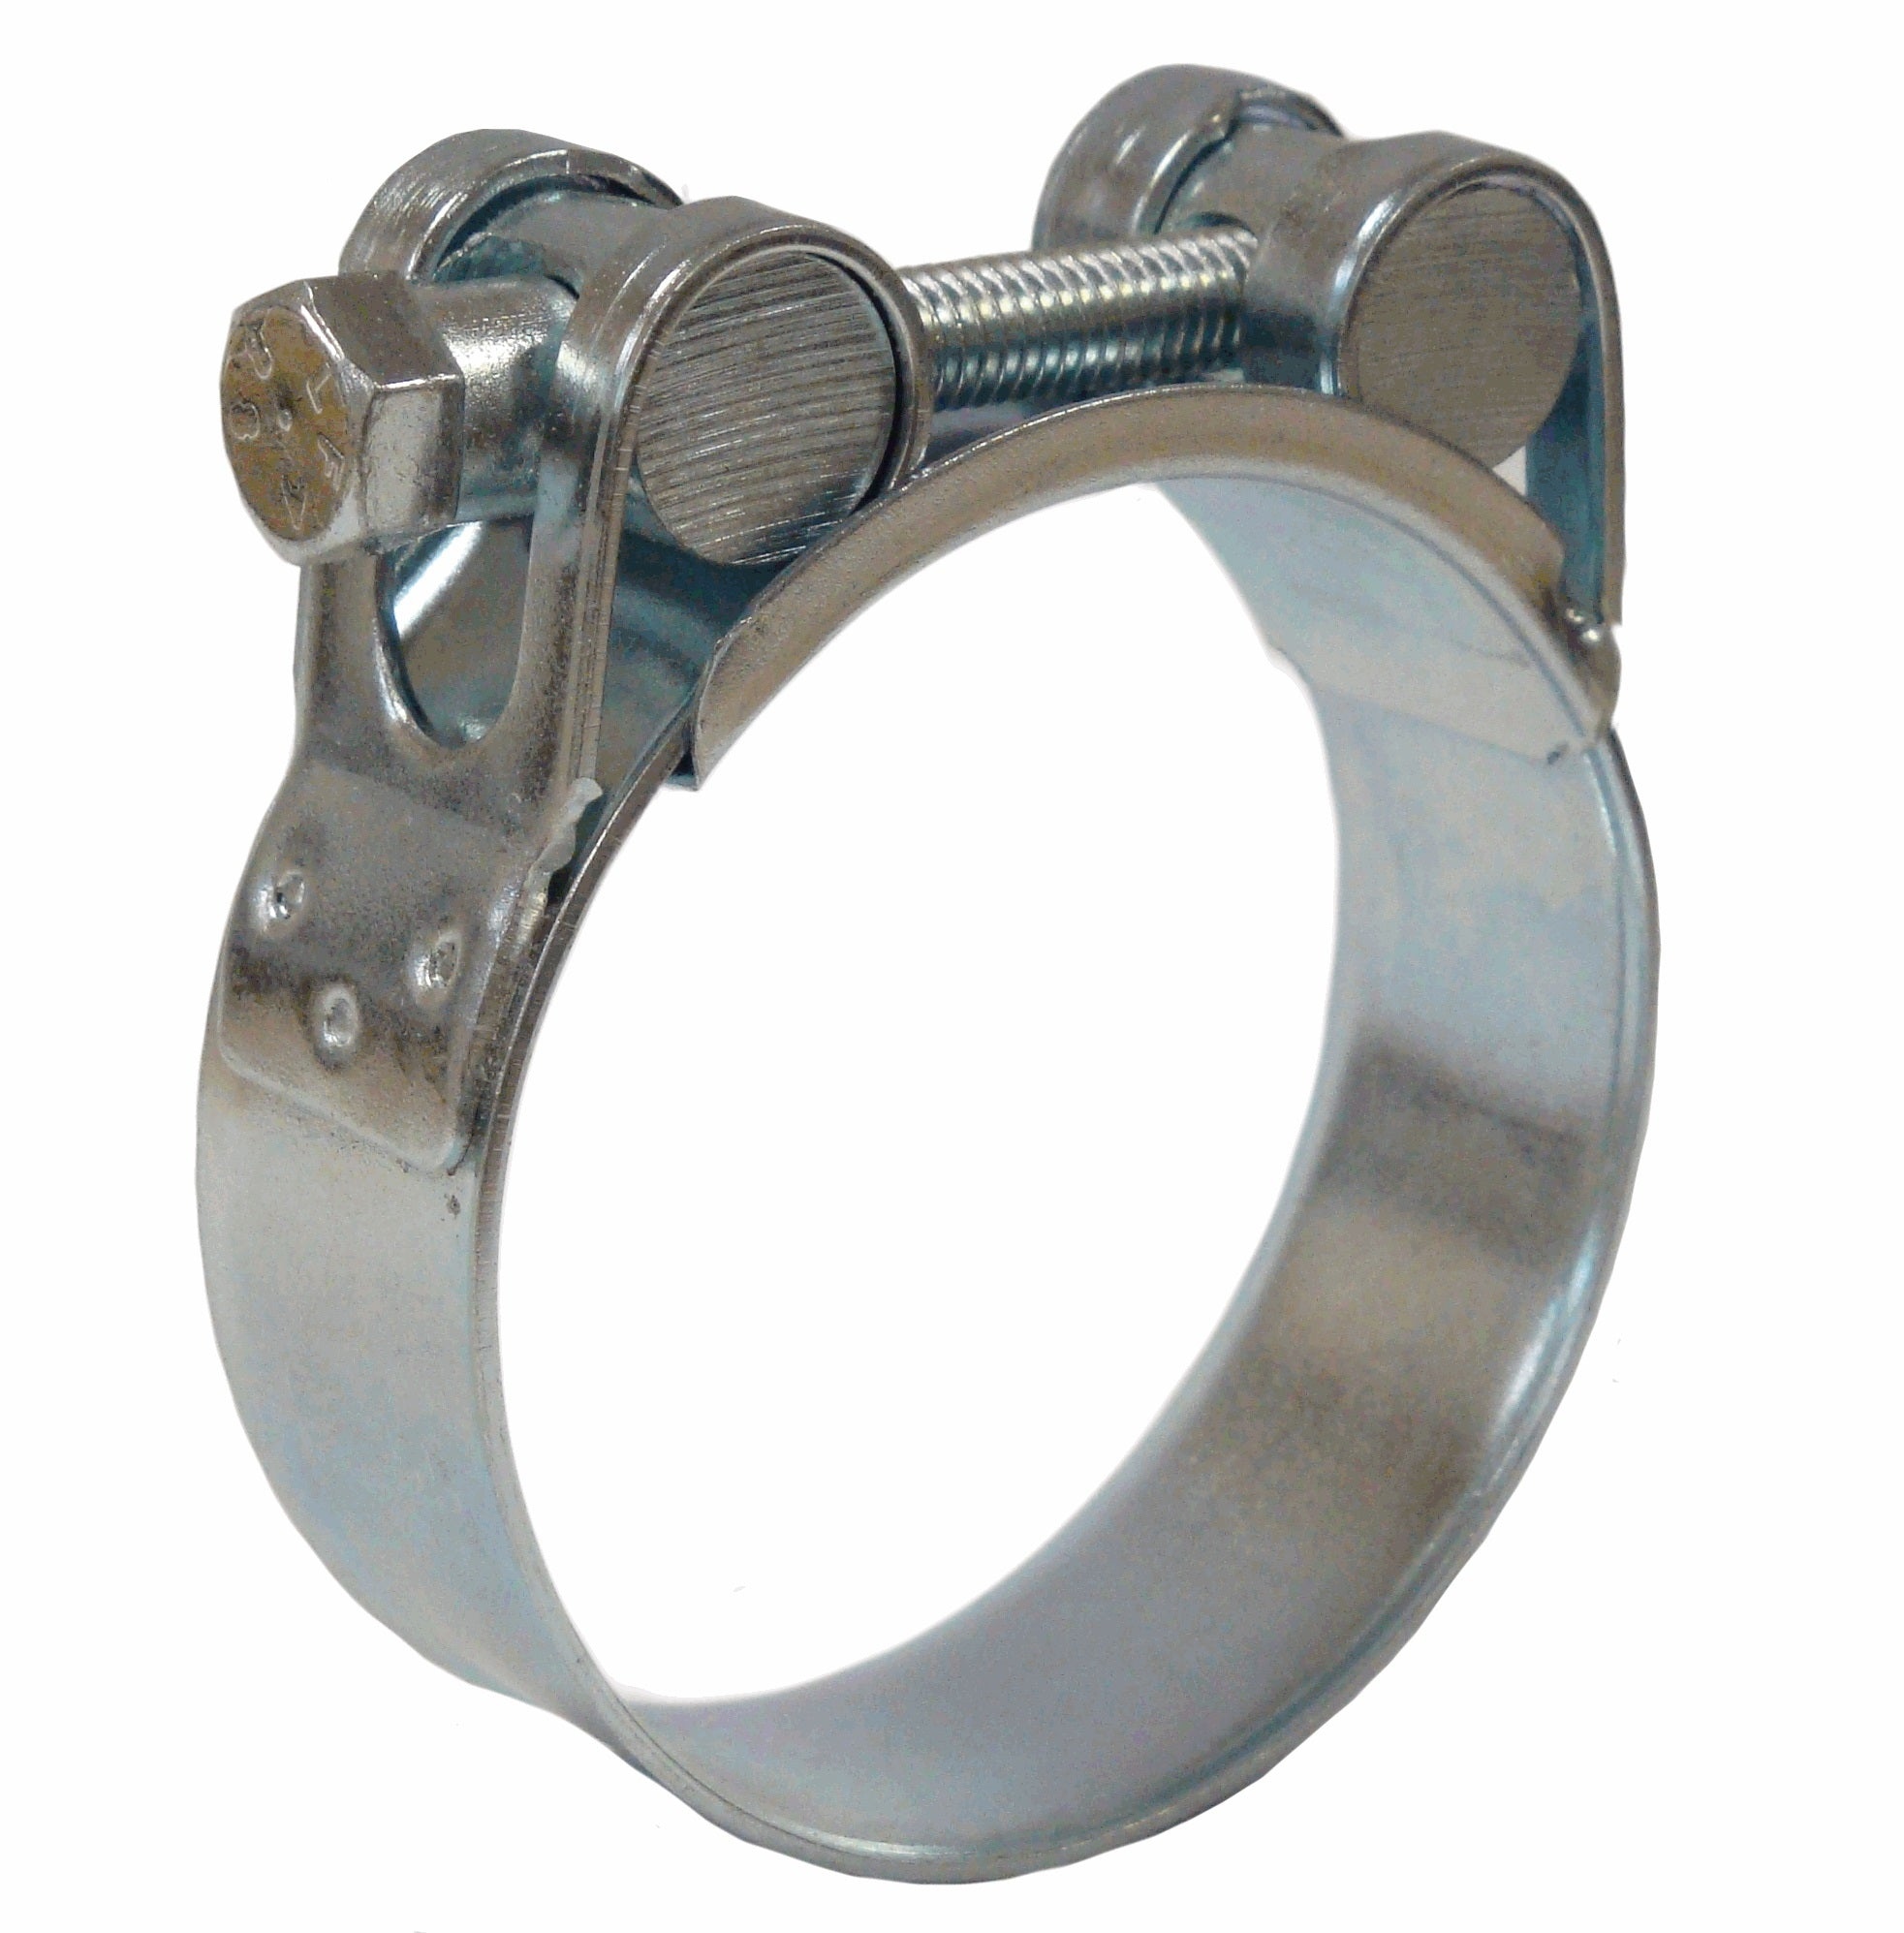 Jubilee® Superclamp 40-43mm 316 Stainless Steel